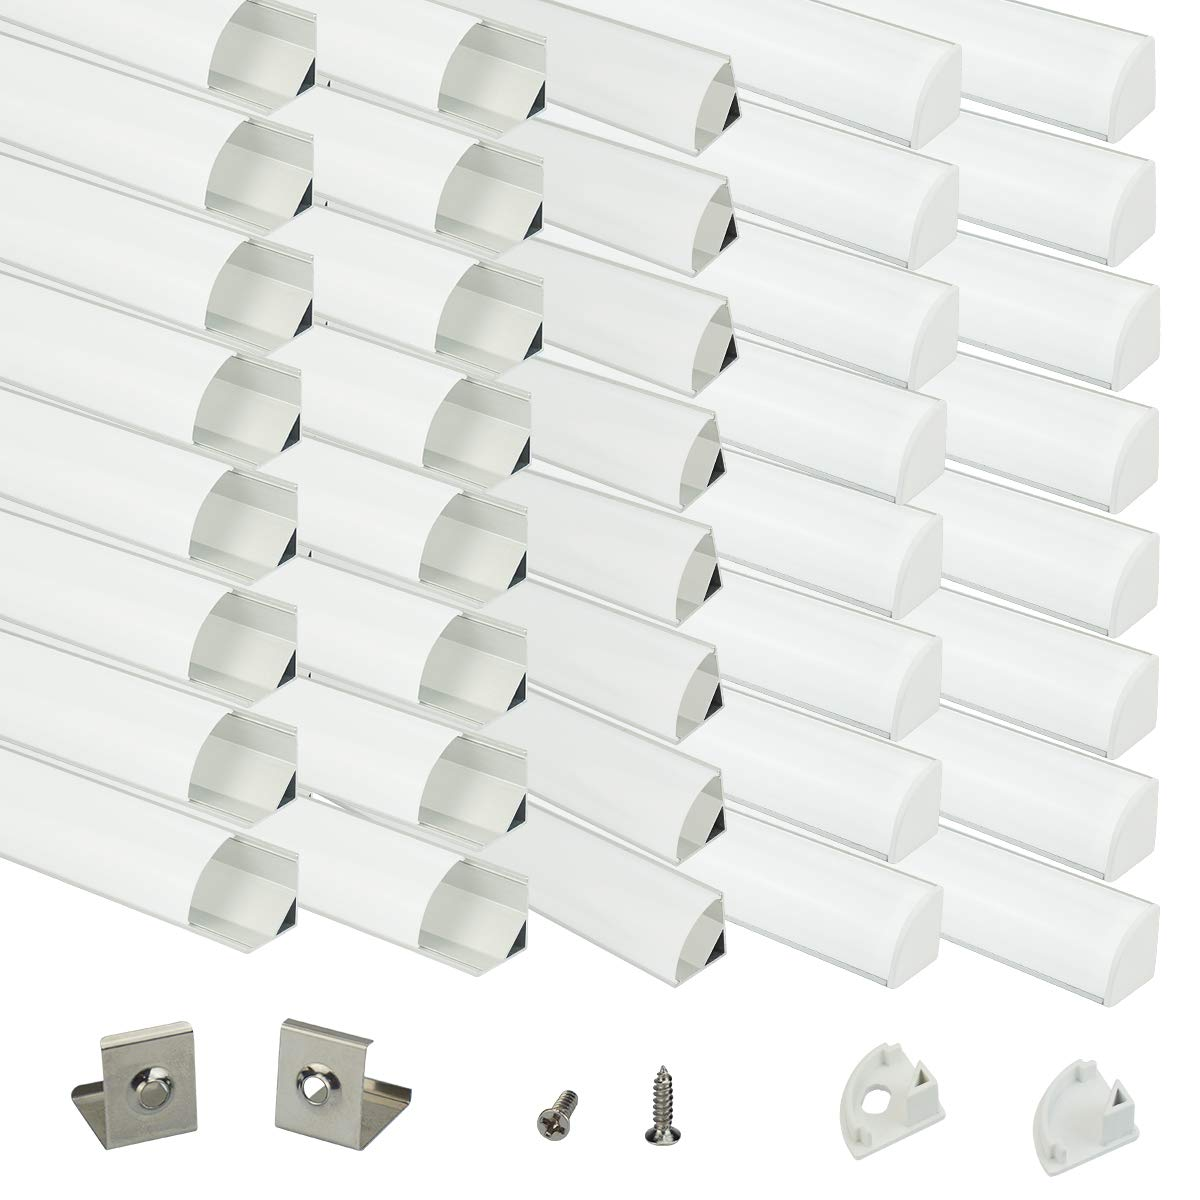 Muzata Aluminum Channel For Led Strip Light With Milky White Curved Diffuser Cover, End Caps, and Mounting Clips. Right Angle Aluminum Profile, with Video V-Shape, 40-Pack 3.3ft/1M V1SW,series LV1 by Muzata